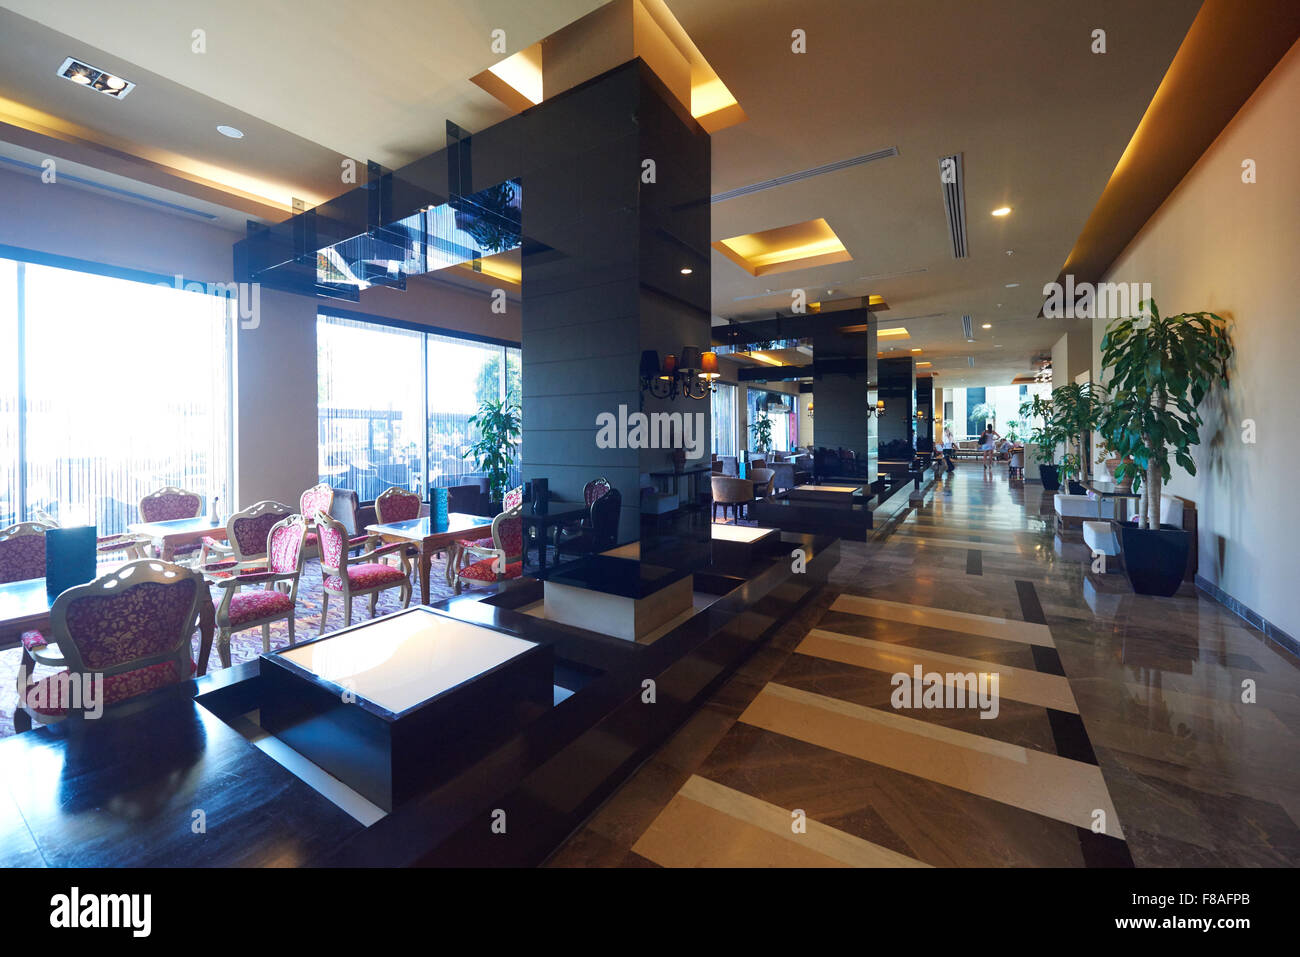 Luxury business hotel lobby interior with modern design for Business hotel design